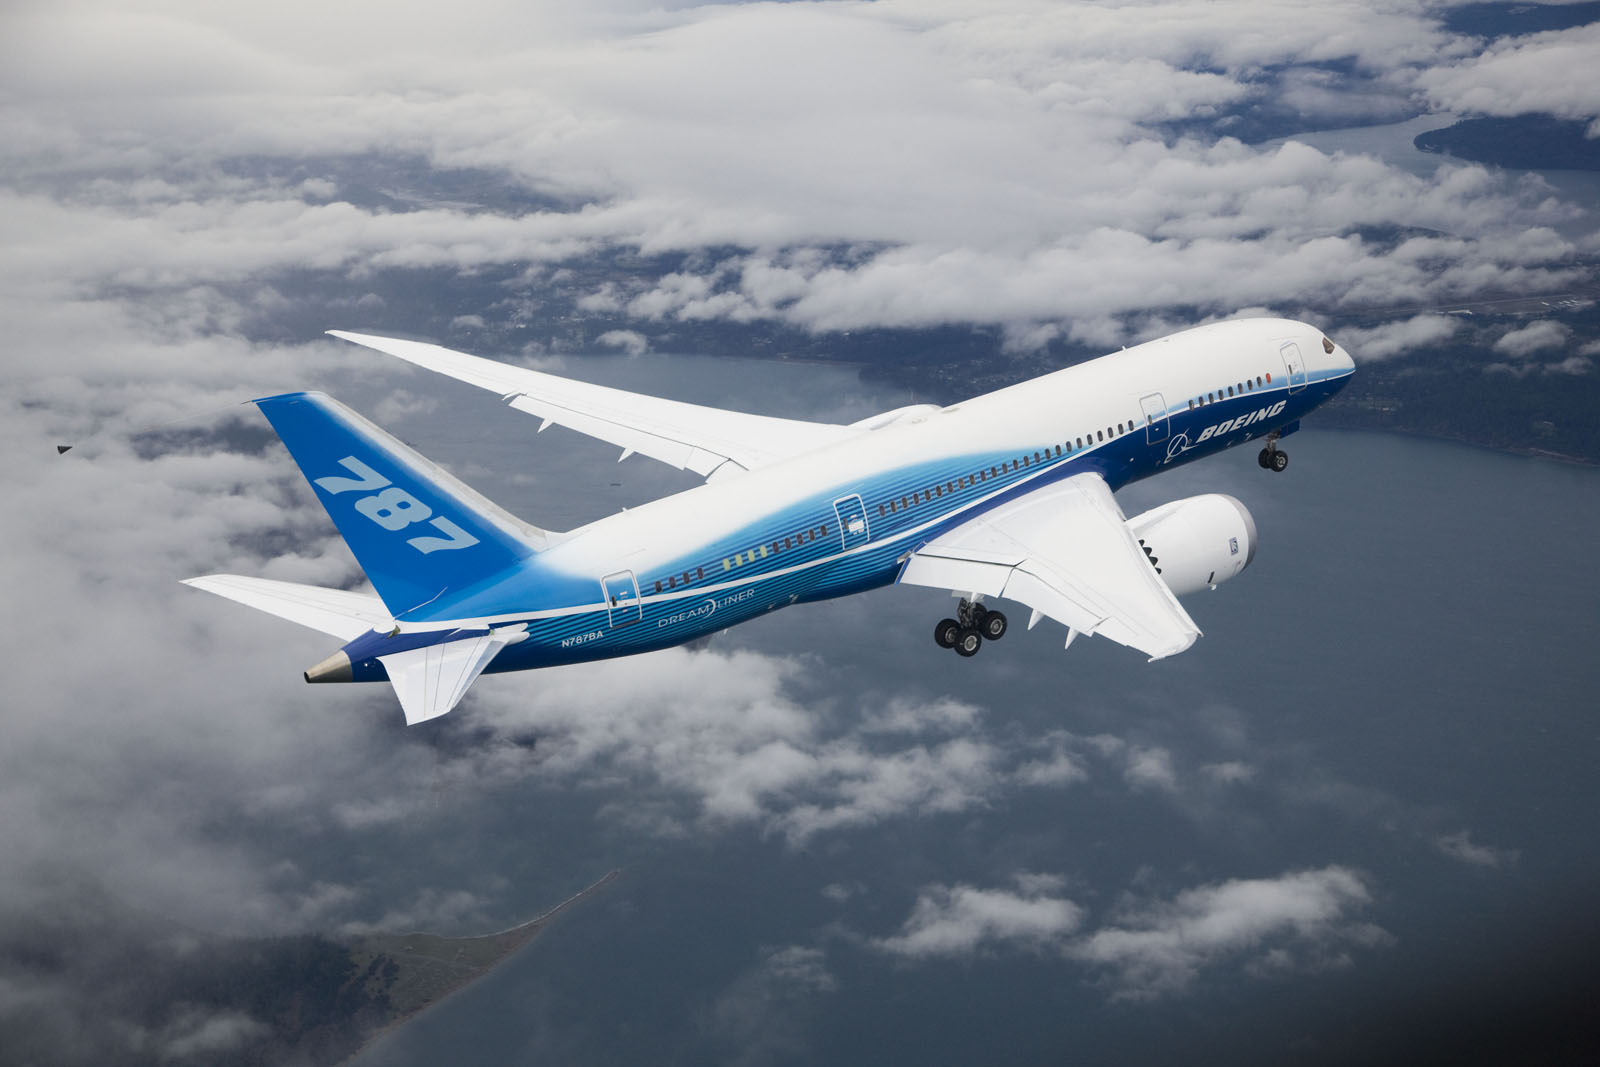 The Boeing 787 Dreamliner is an aircraft that uses composite materials